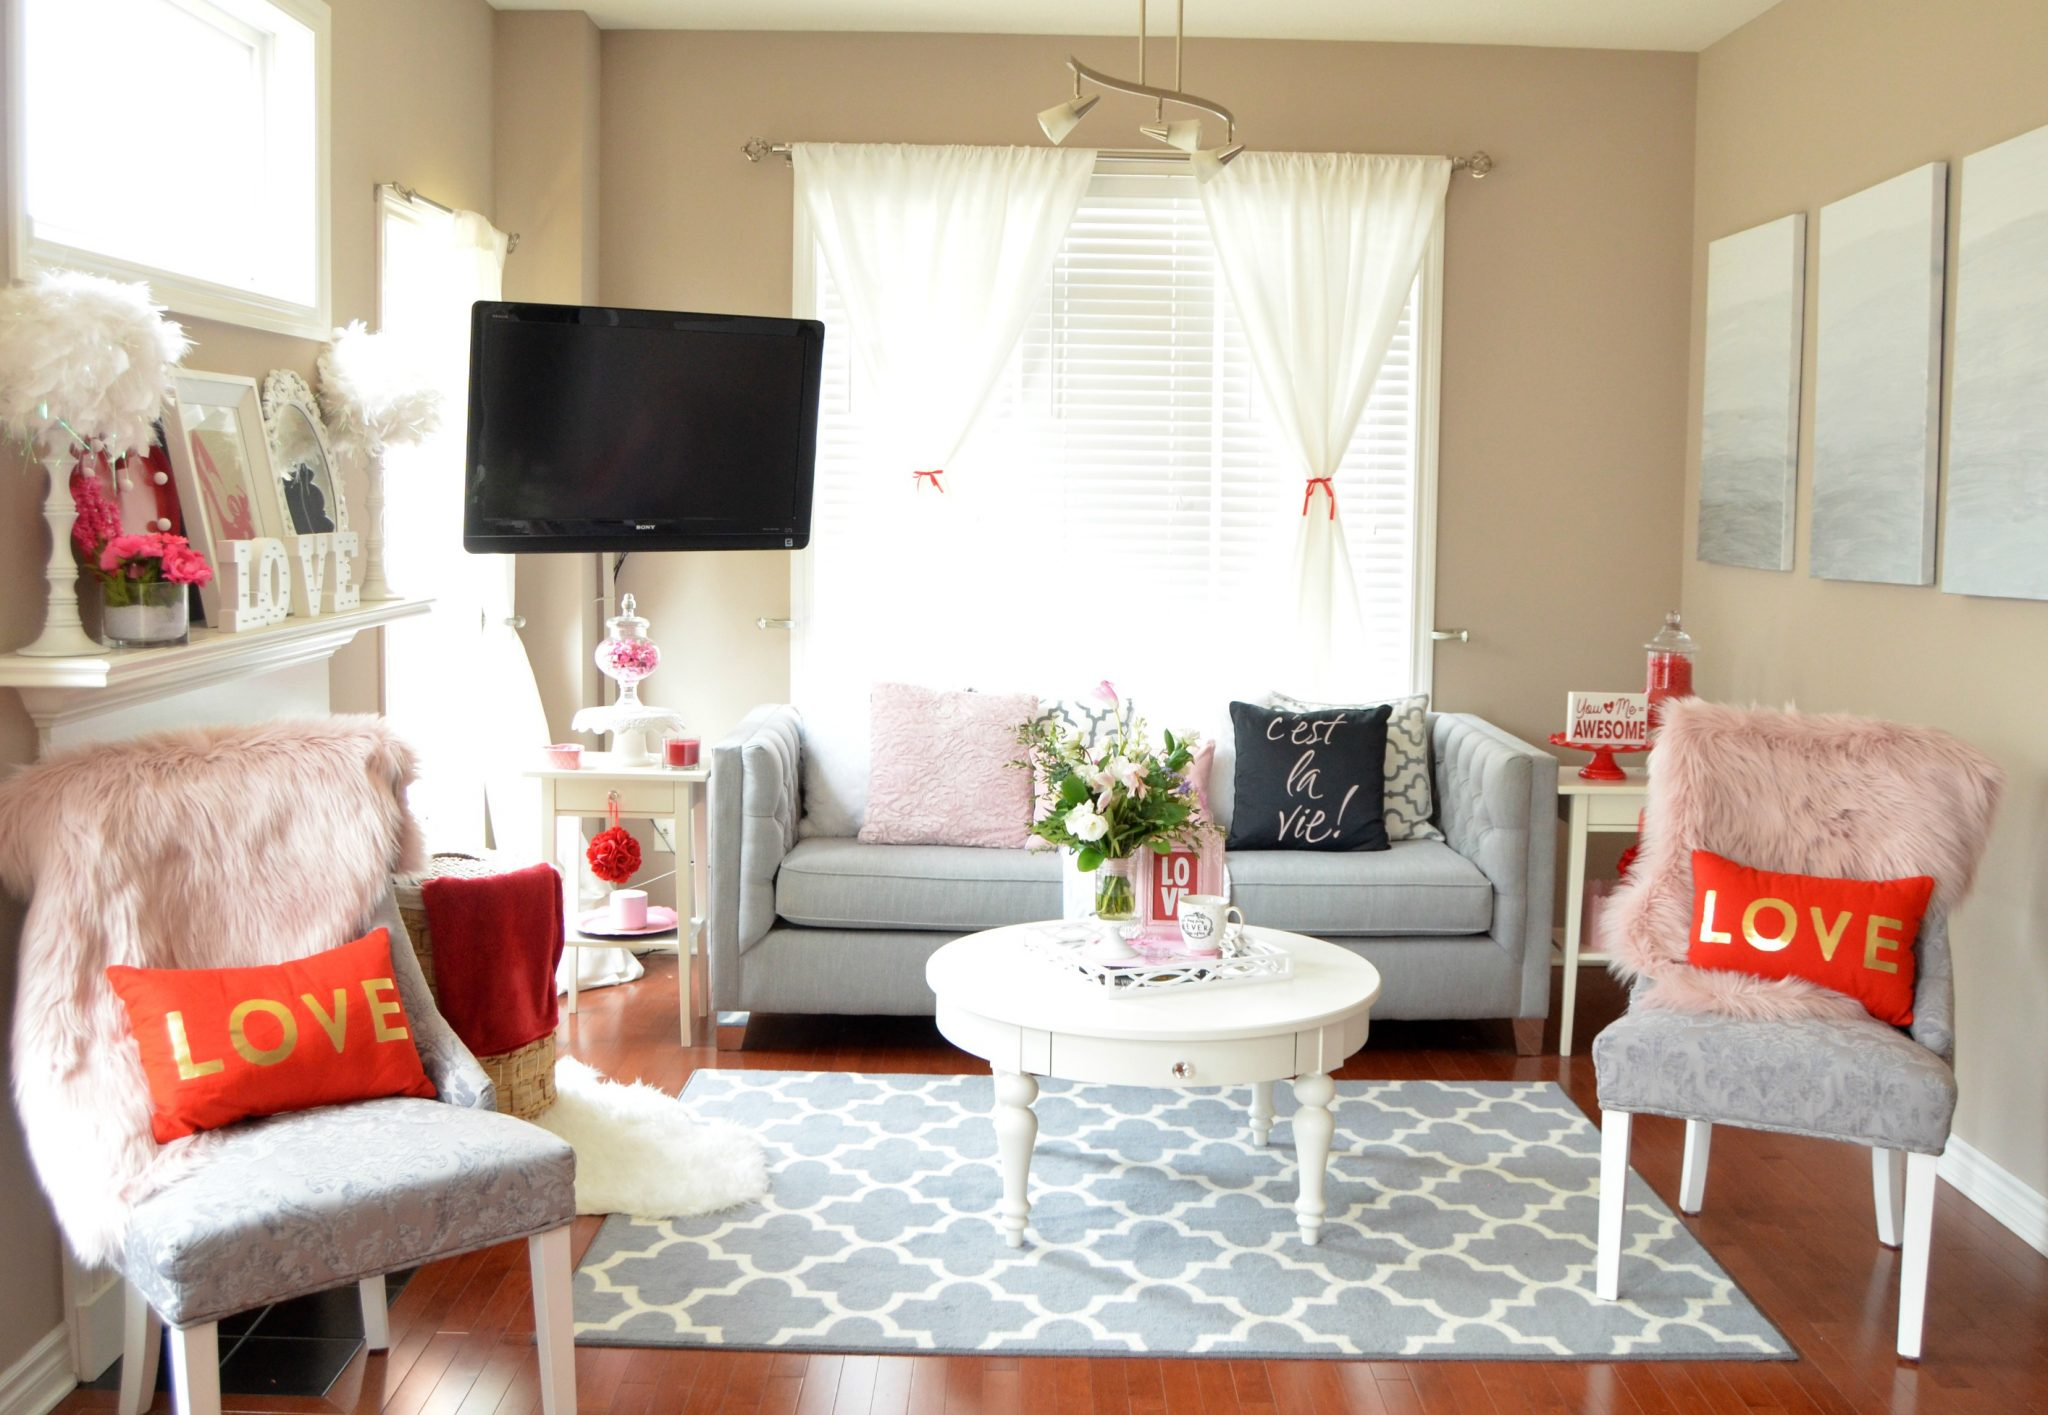 Valentines day Home Decor - Canadian Fashionista